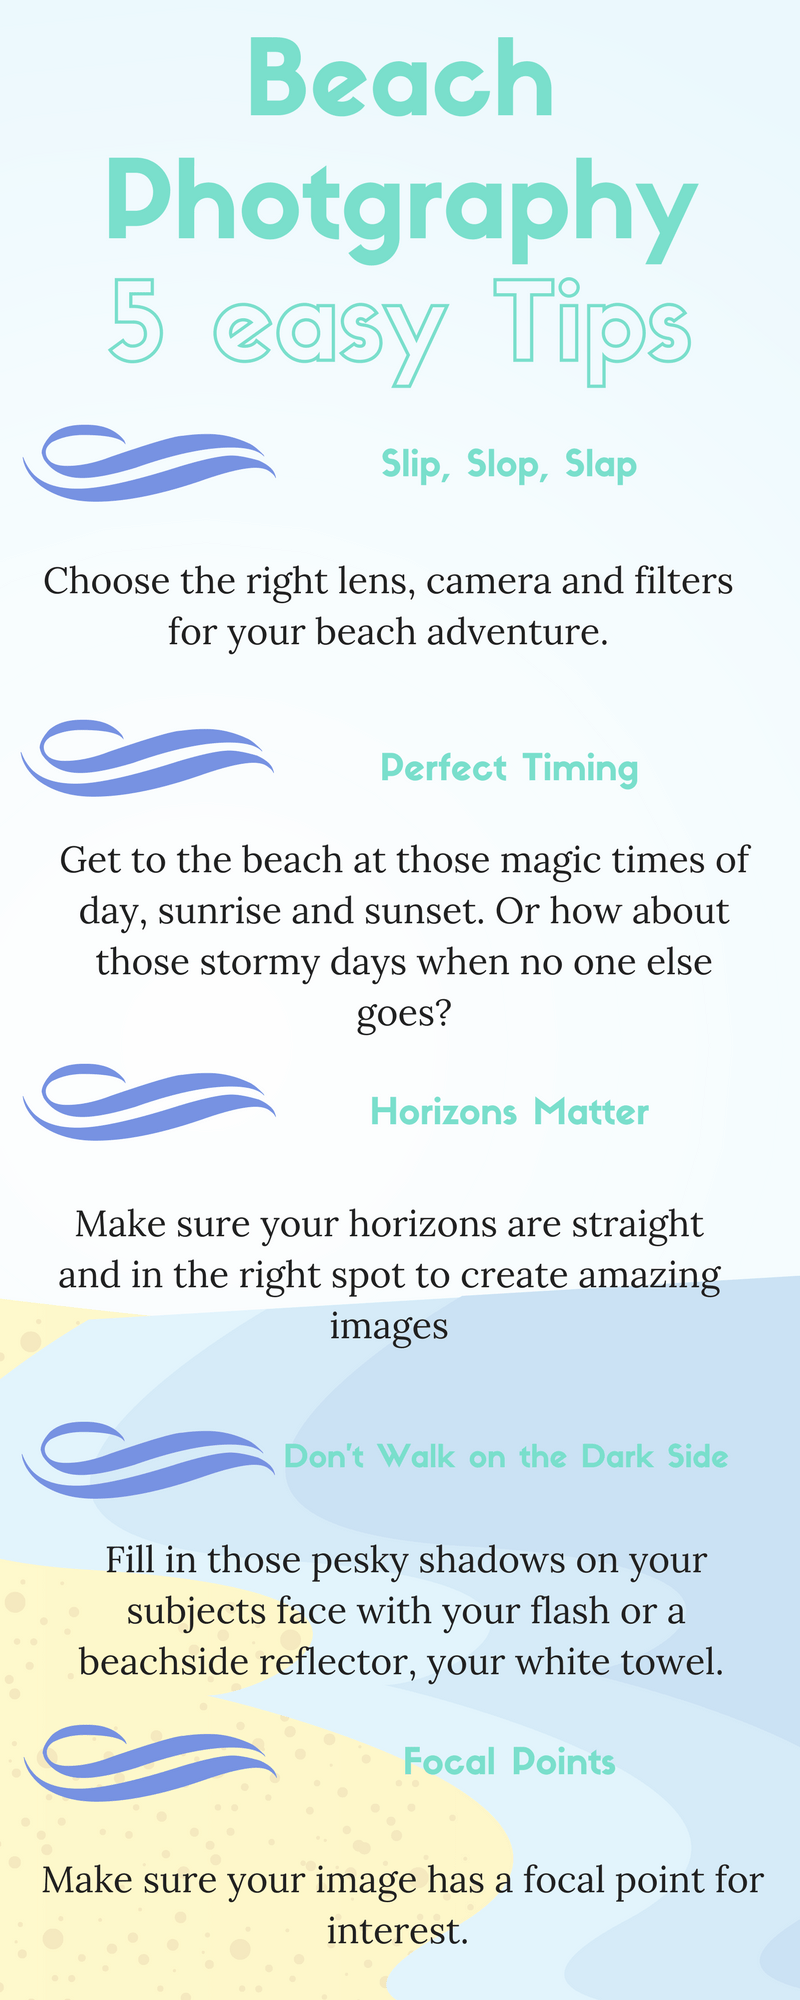 How to take stunning beach photos_ 5 easy tips. Travel With Meraki